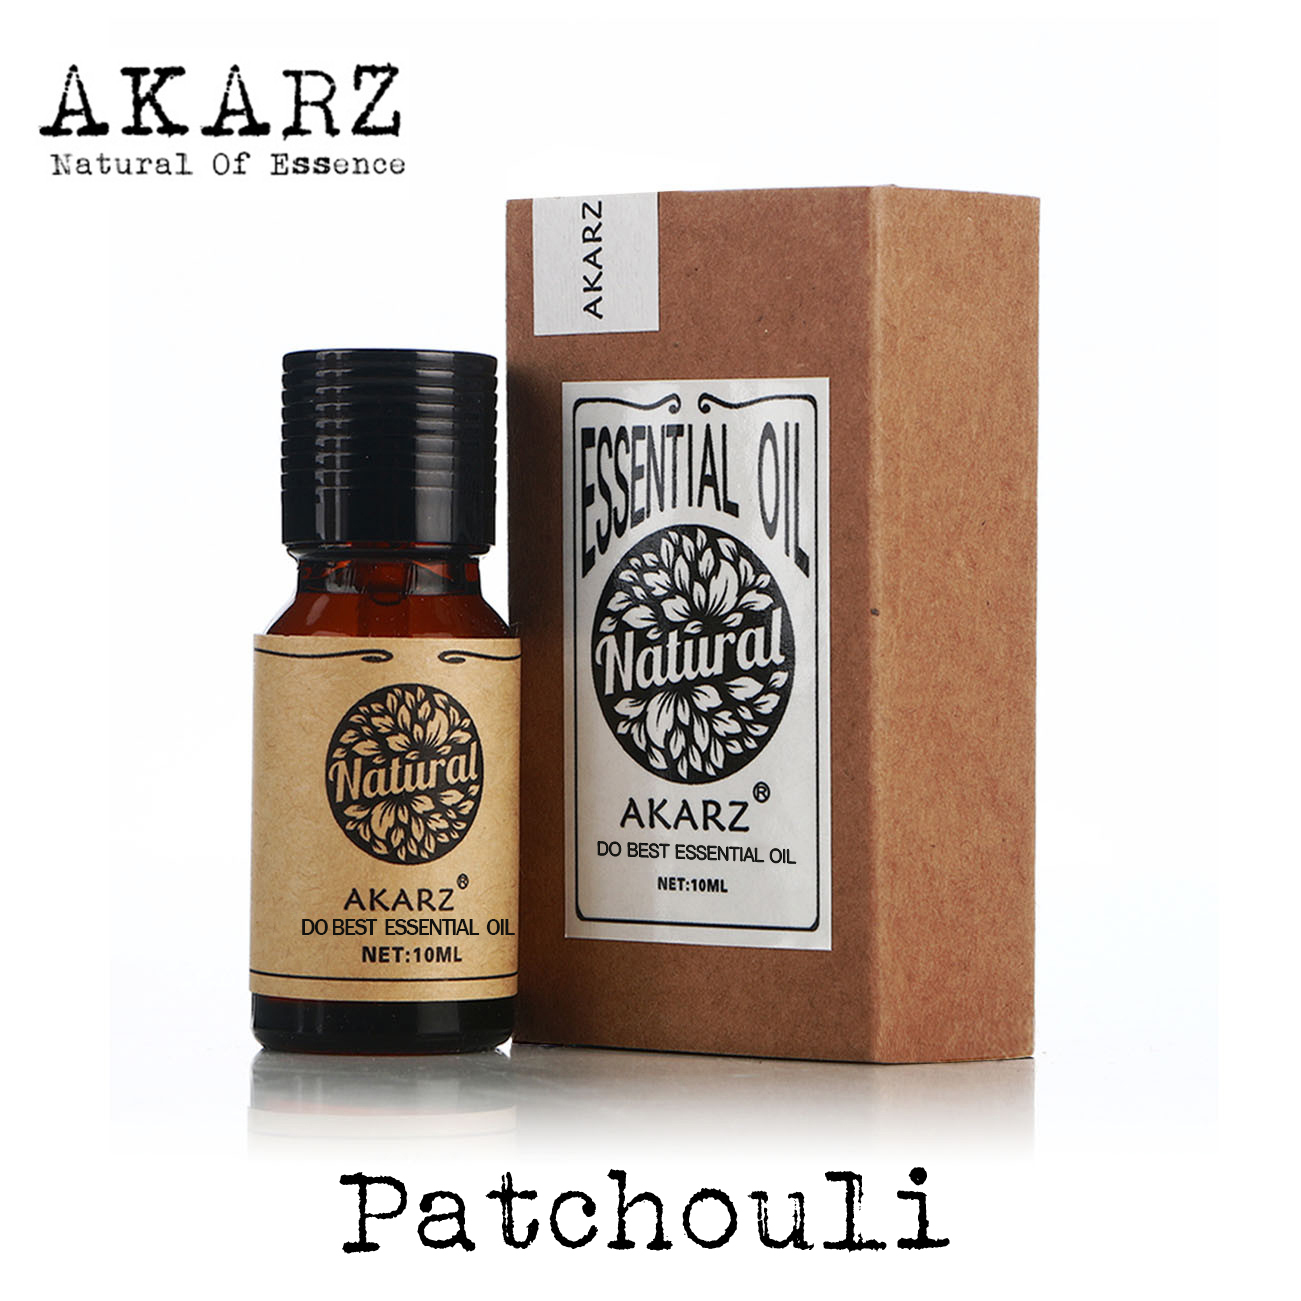 AKARZ Famous Brand Patchouli Essential Oil Natural Eliminate Acne Relieve Eczema Calm Removal Of Mosquitoes Patchouli OIL